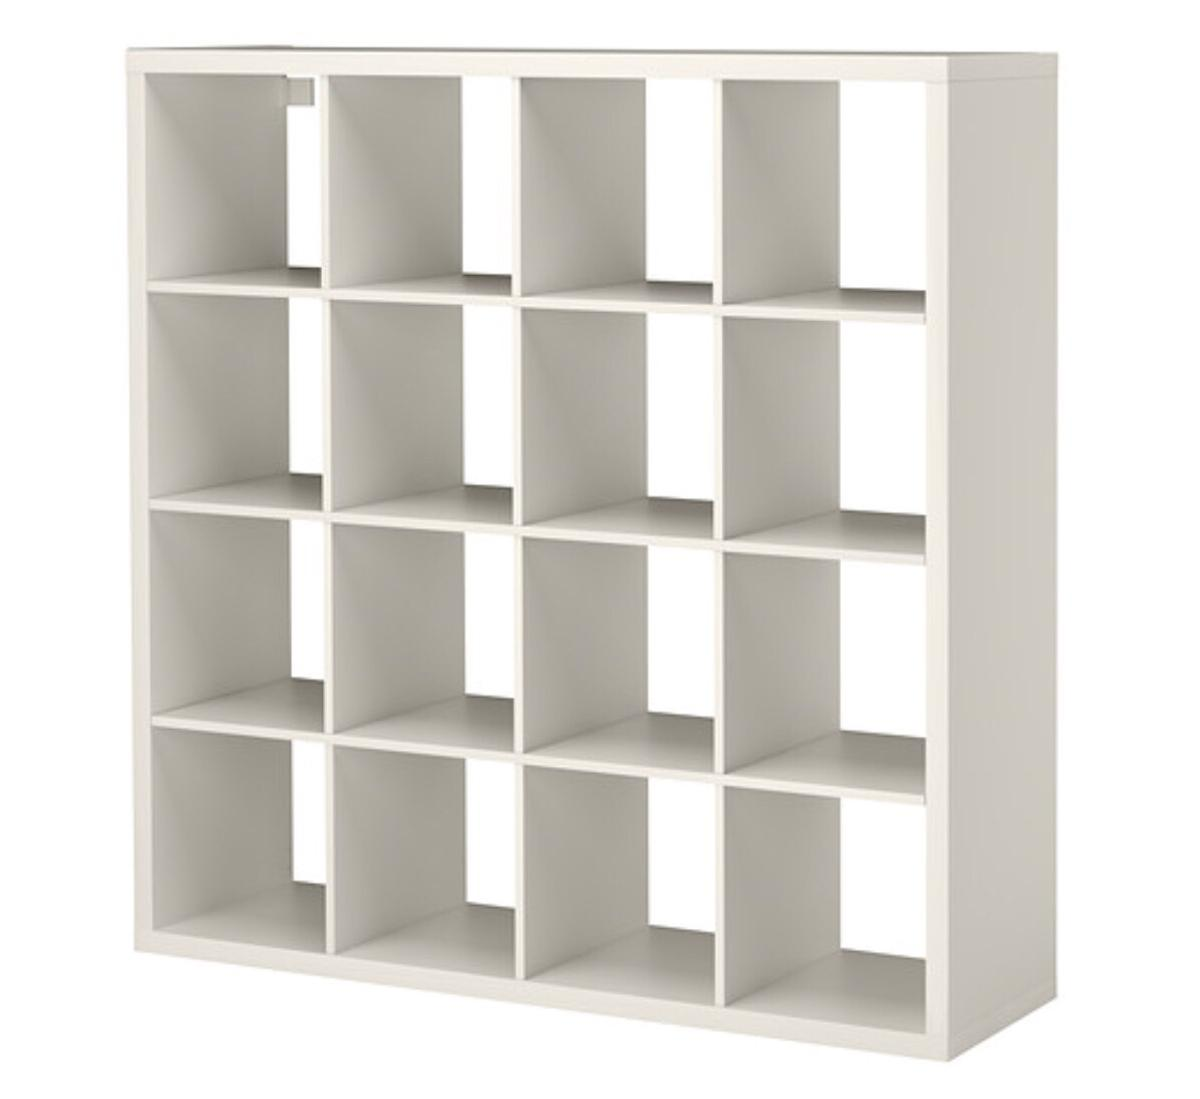 Raumtrenner Regal Weiß Ikea Expedit Regal 5x5 In Weiß